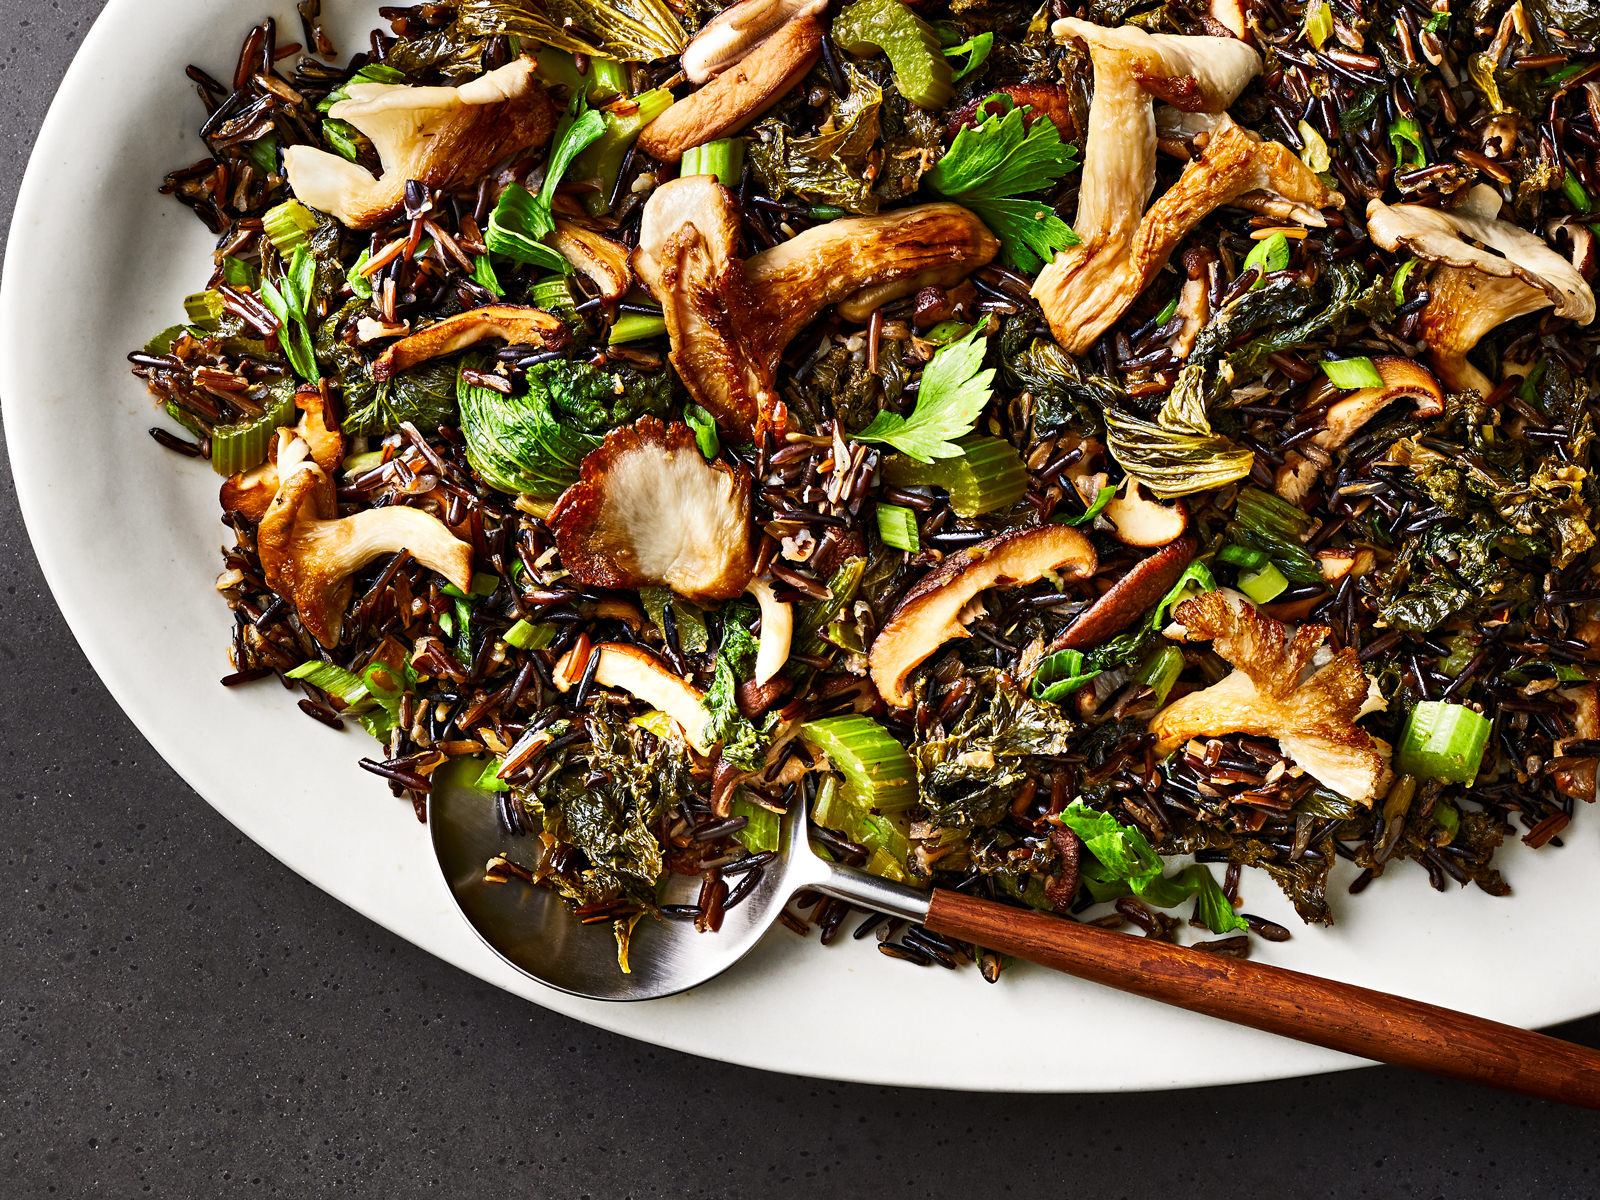 Fried Wild Rice with Mustard Greens and Mushrooms Recipe